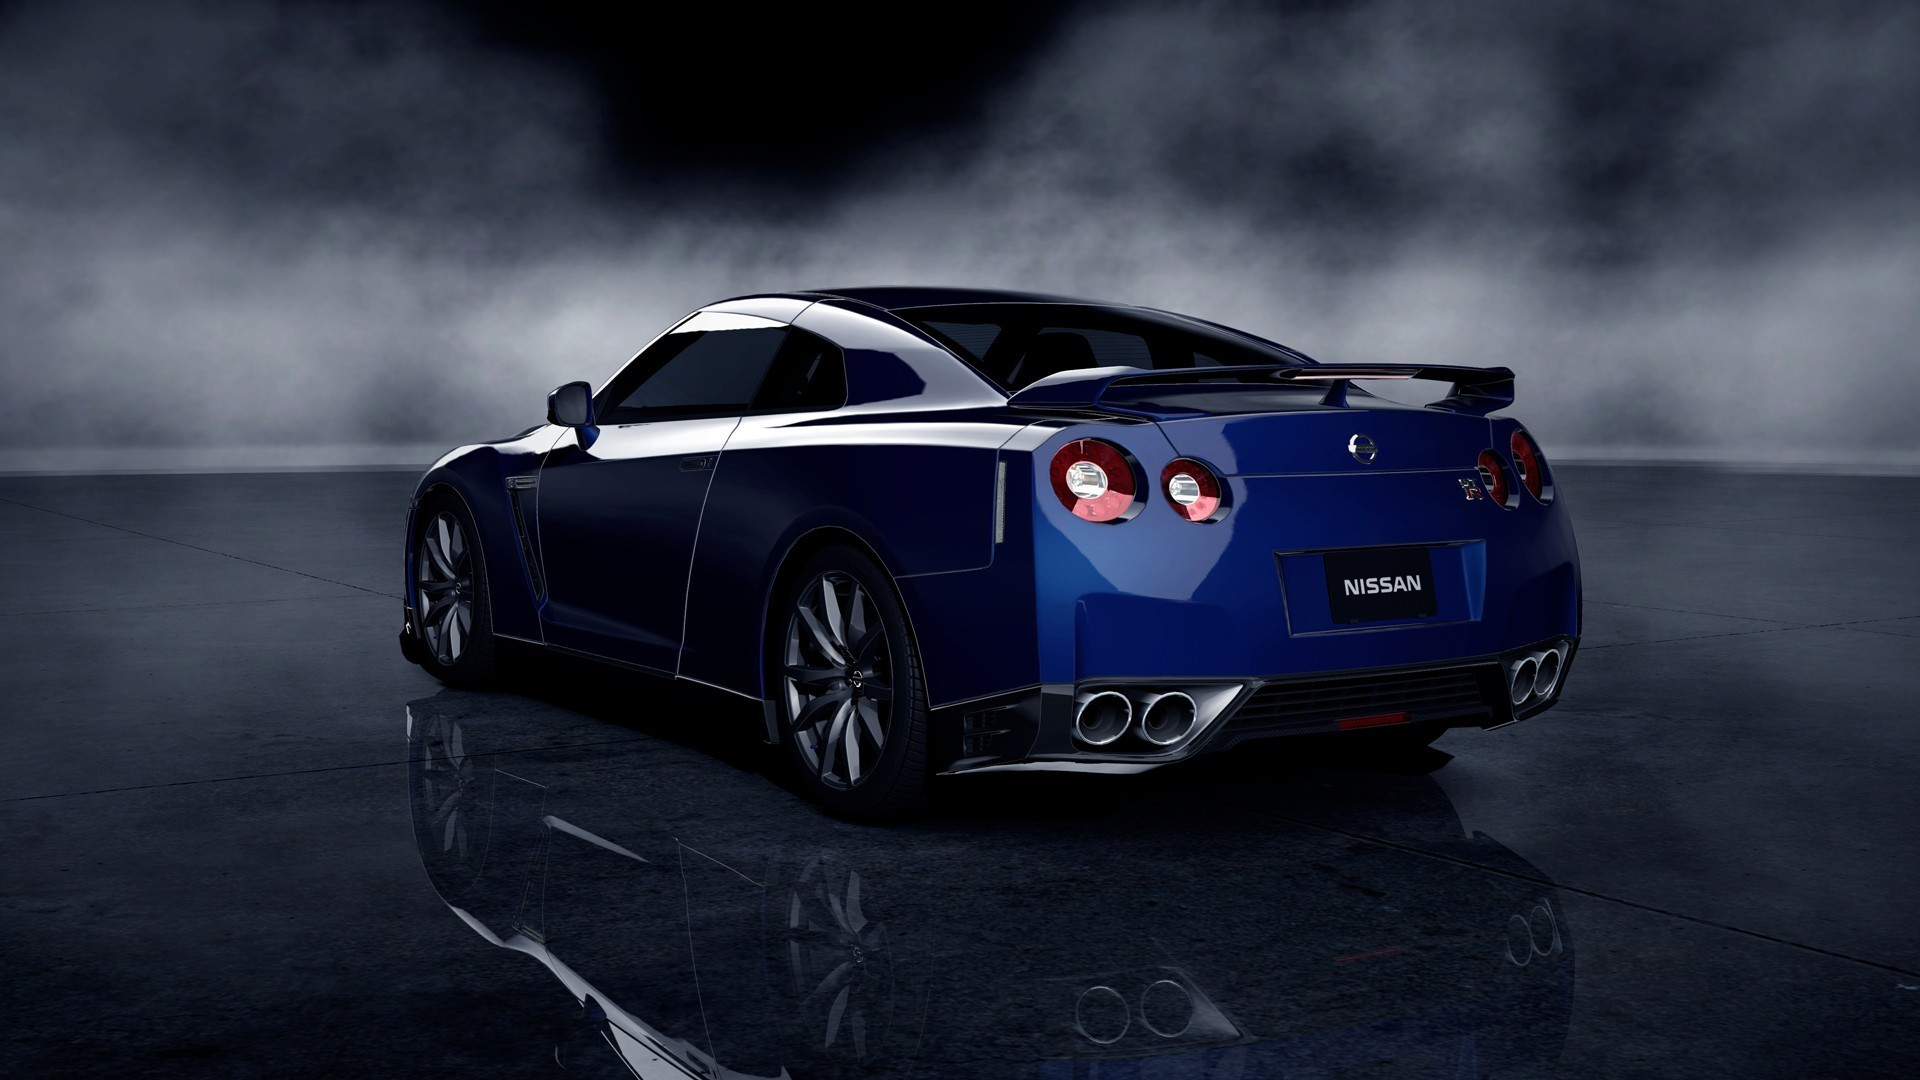 1920x1080 car, Nissan, The Crew, Blue Cars, Nissan Skyline GT R R34 Wallpaper HD